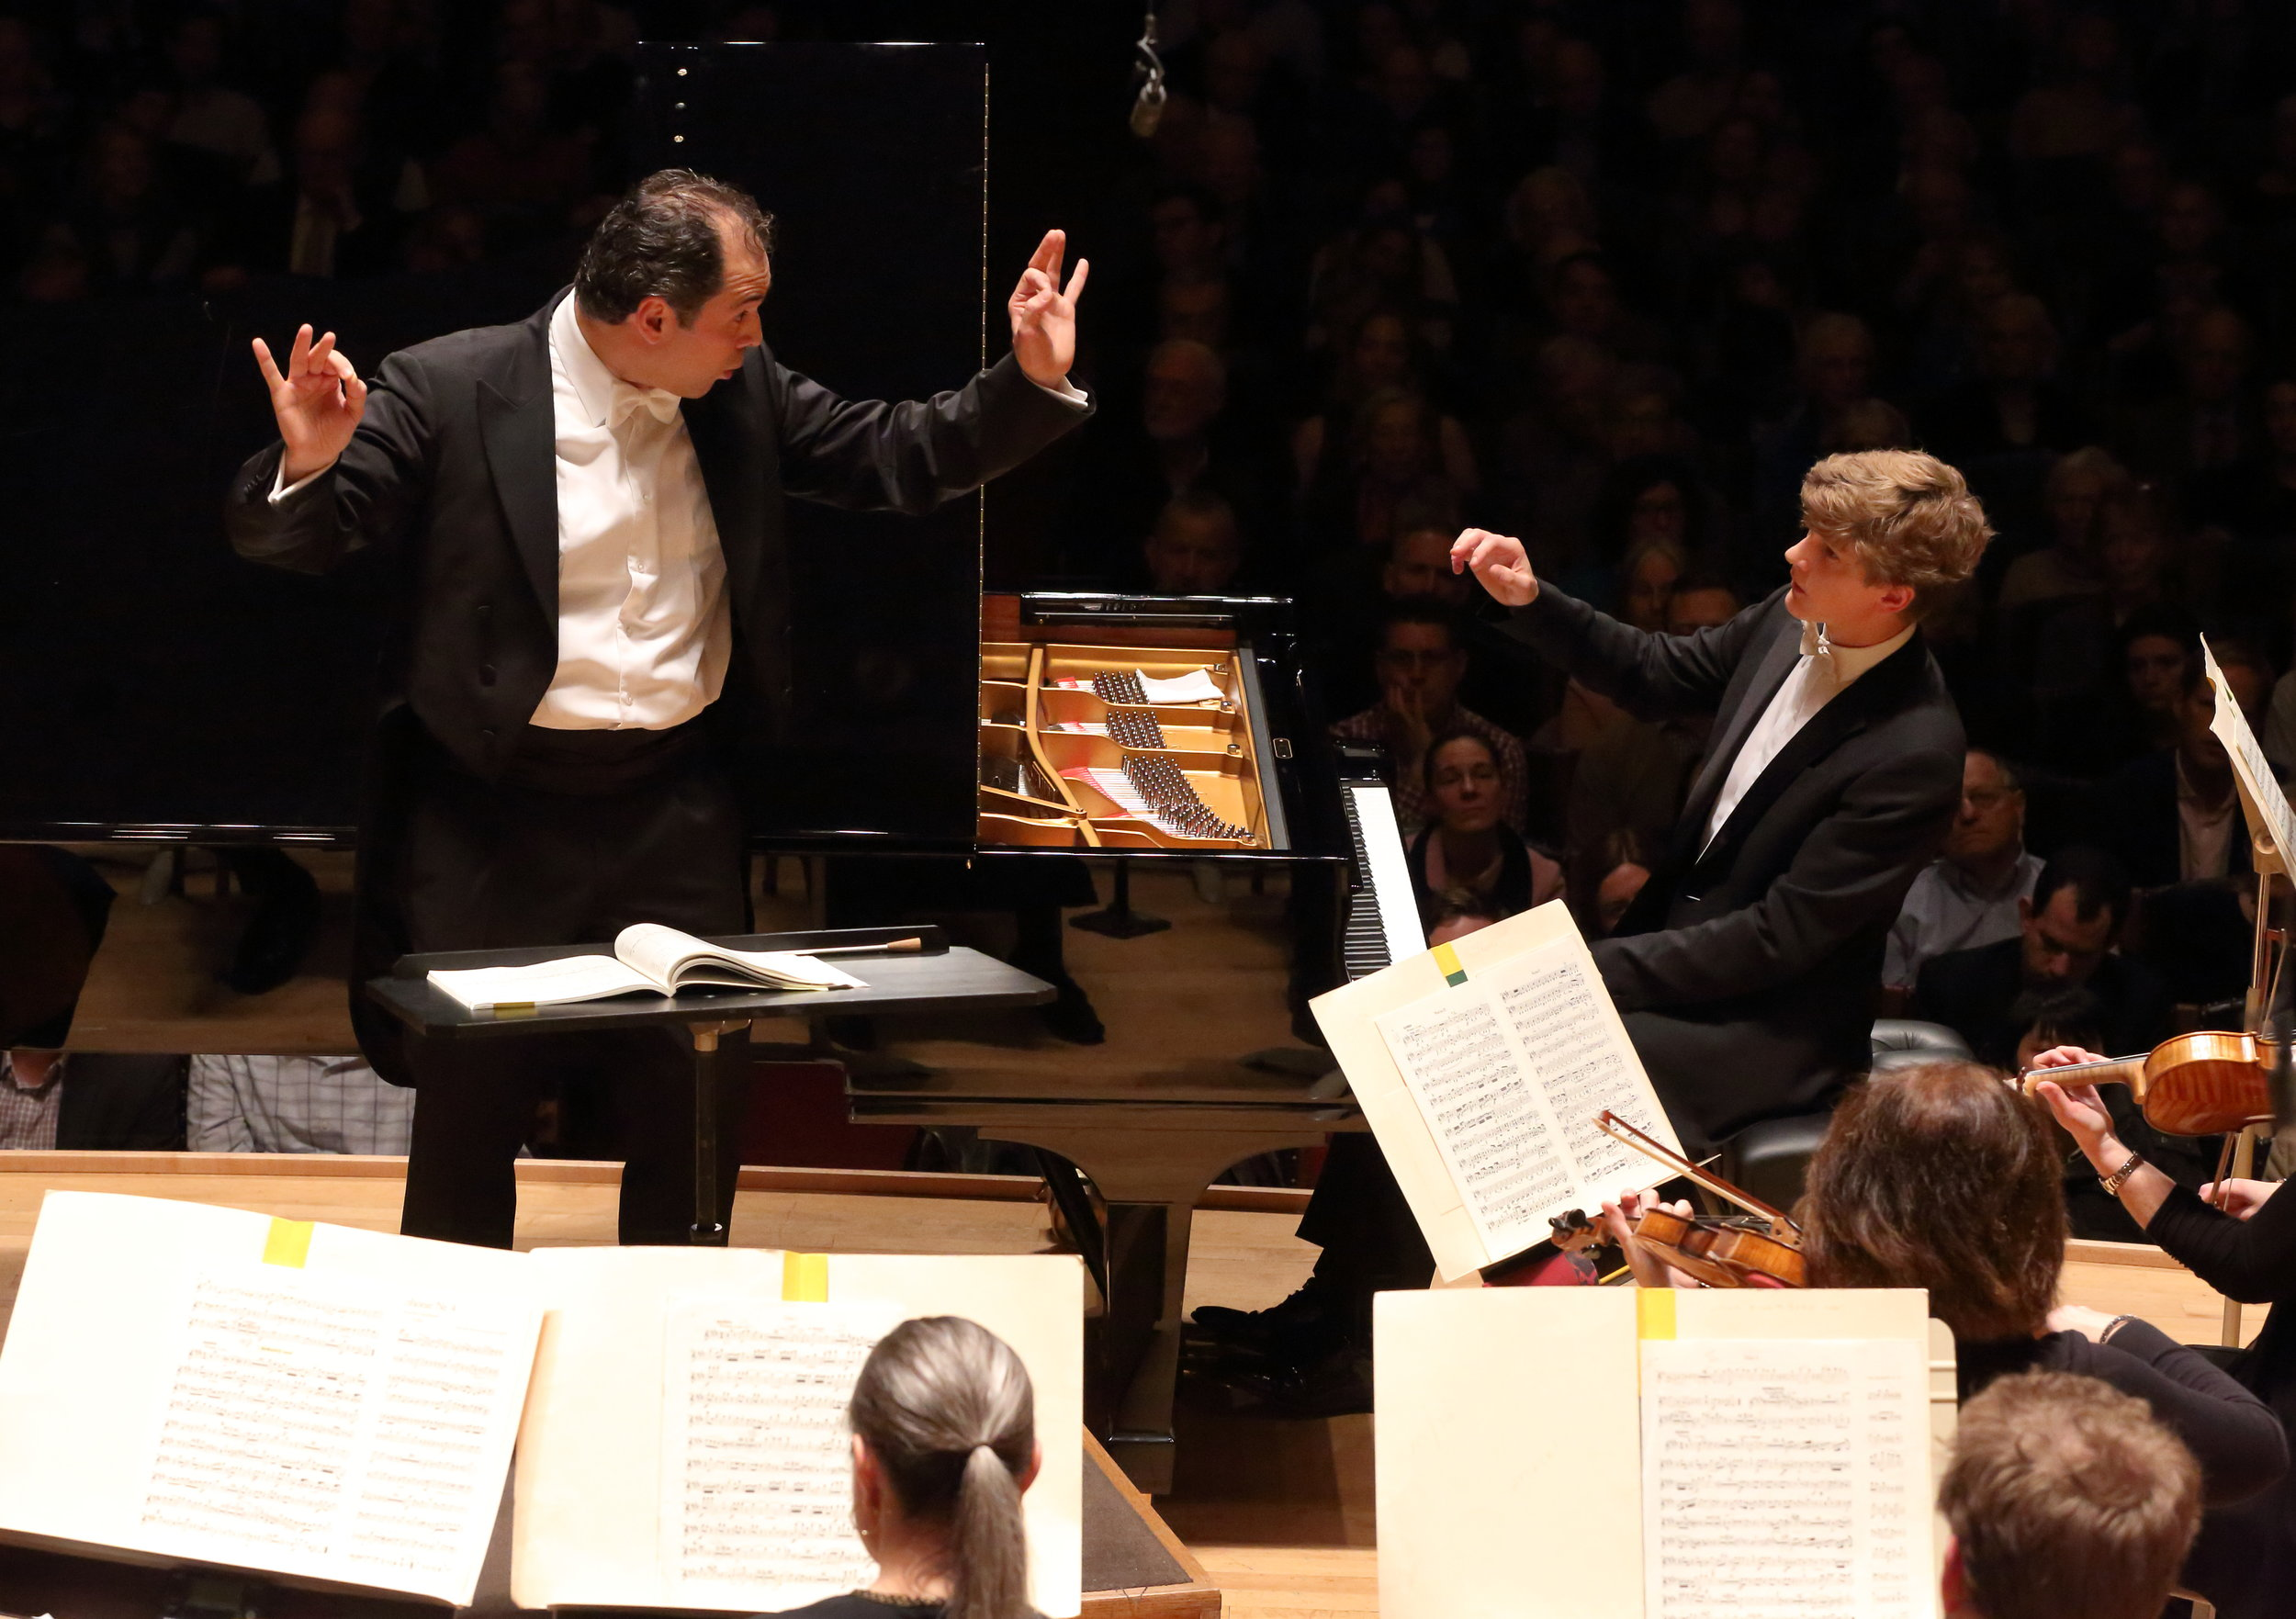 Tugan Sokhiev conducts the Boston Symphony Orchestra on April 19, 2018, the first of two concerts that mark his BSO debut. Jan Lisiecki solos in the first Chopin concerto. Hilary Scott photograph.